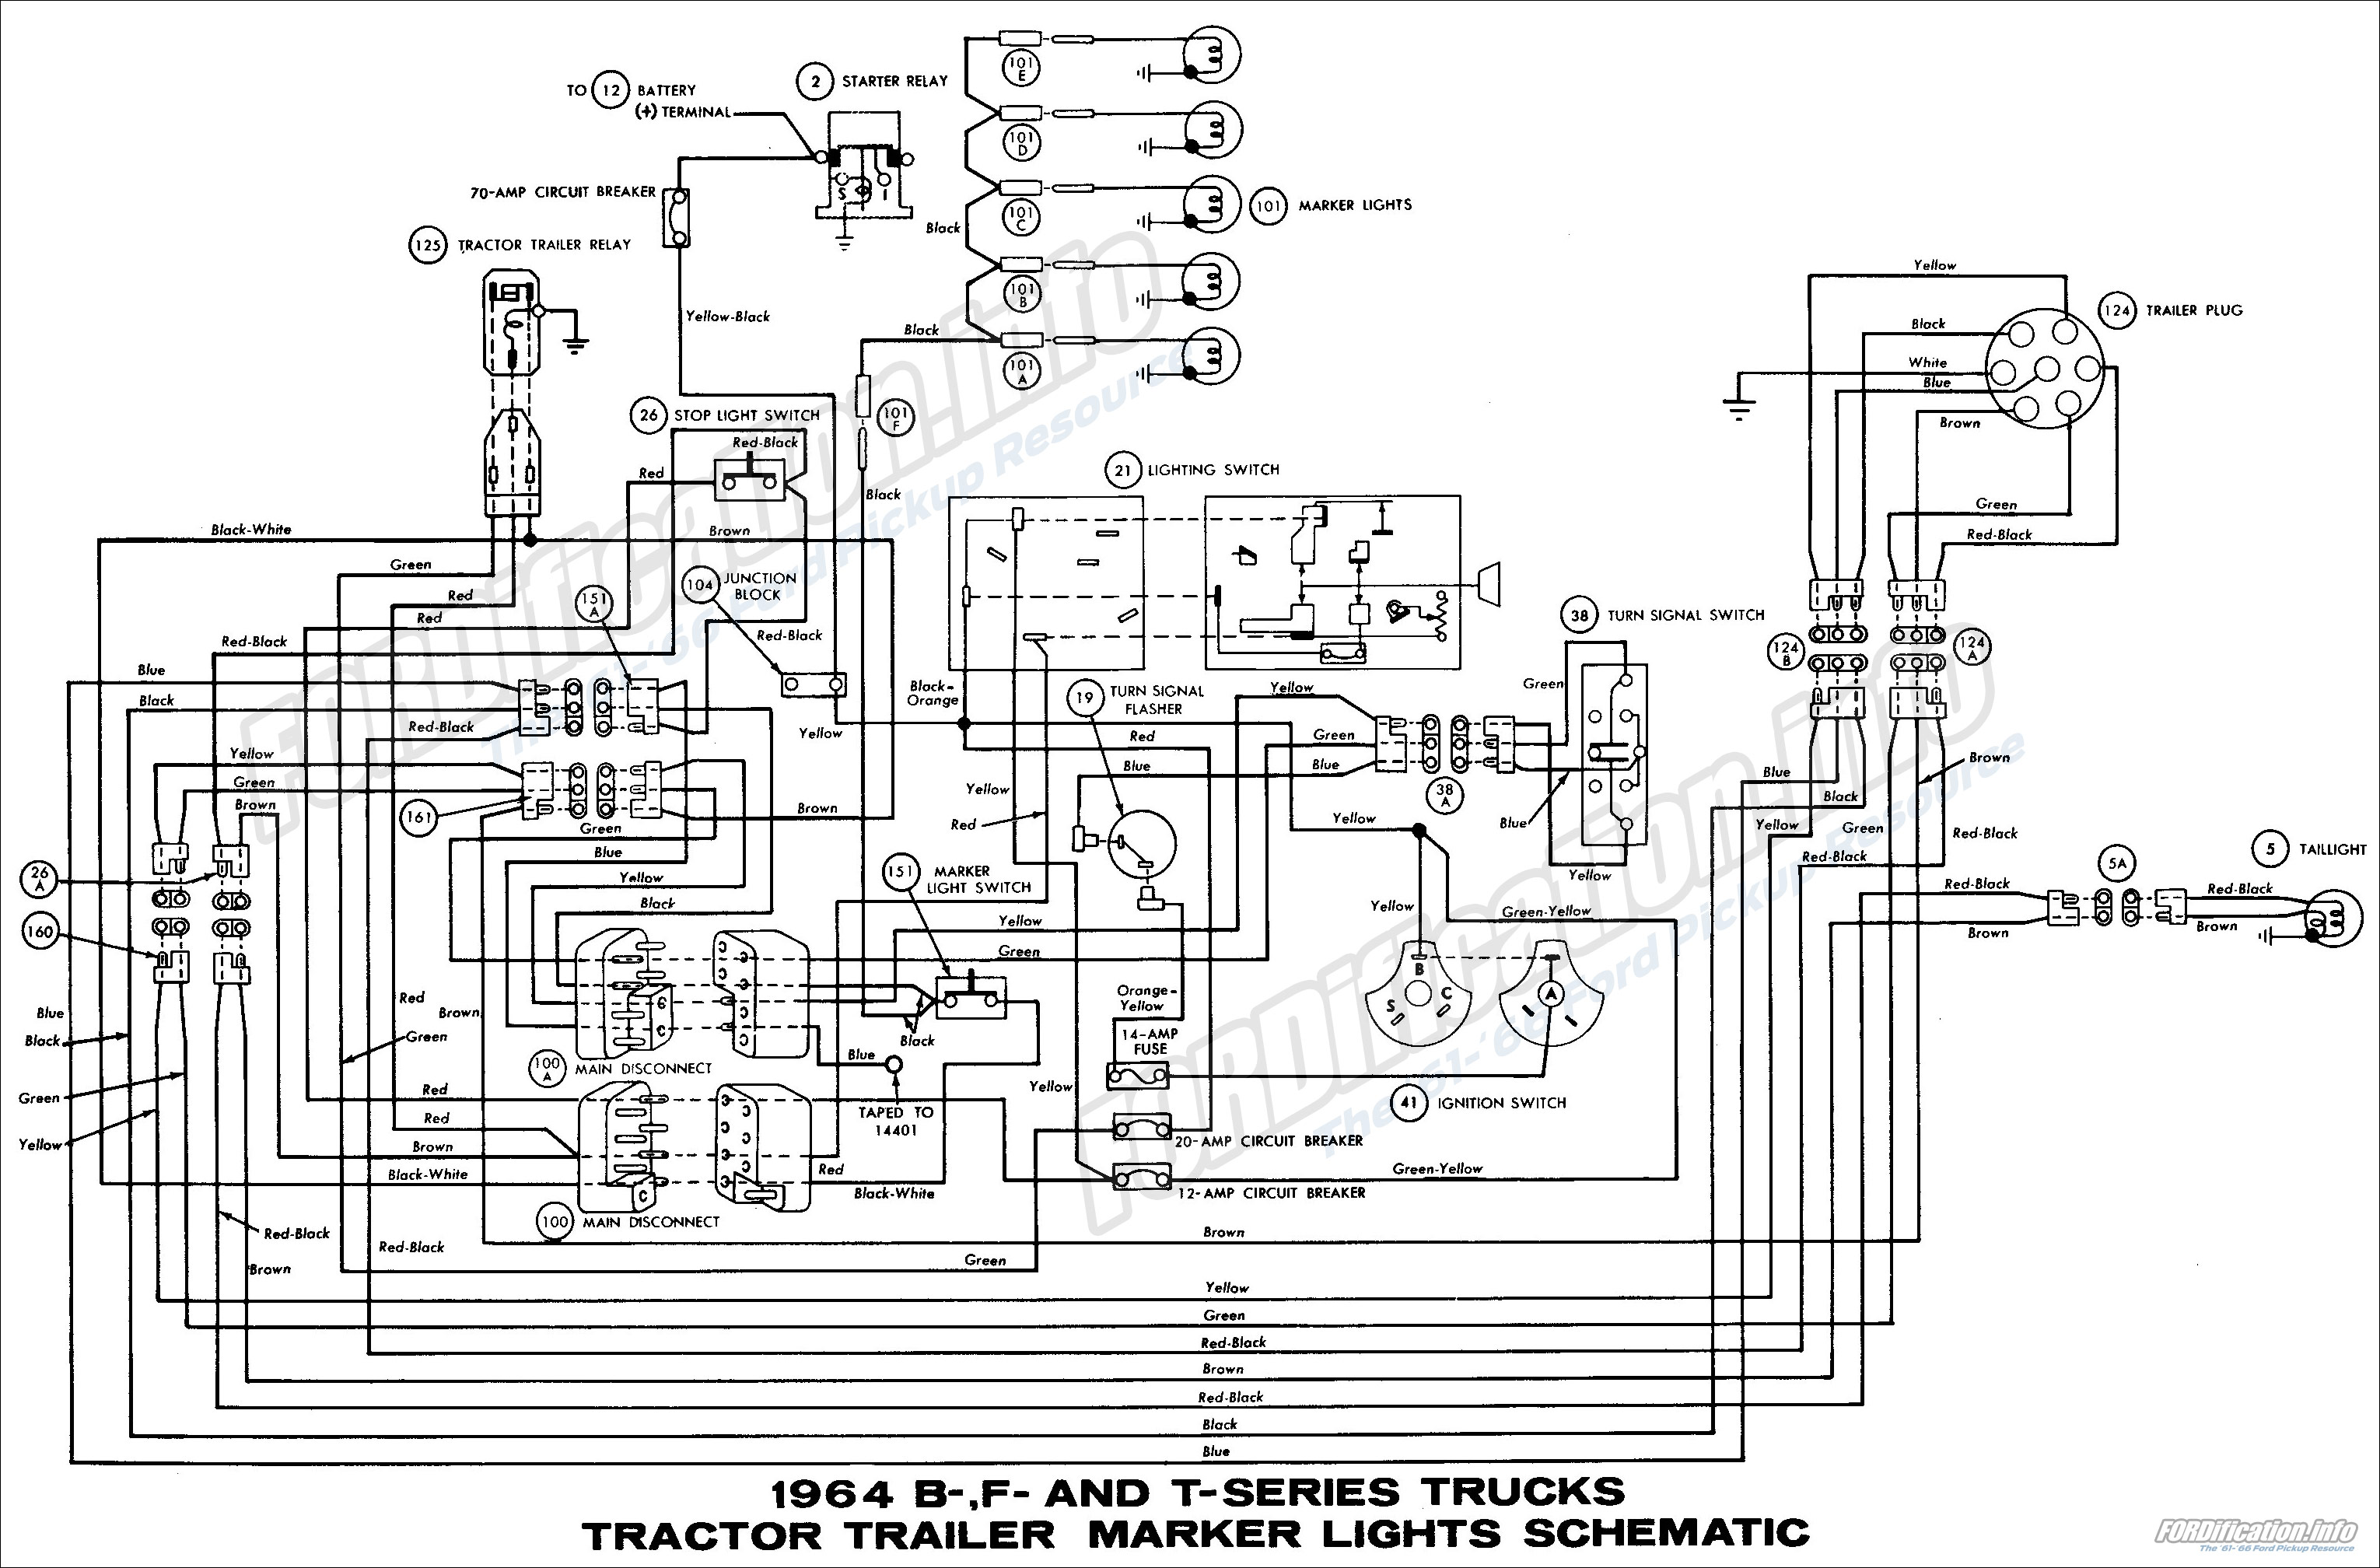 1964 Ford Truck Wiper Switch Wiring Diagram Electrical Diagrams Trusted Ignition Module